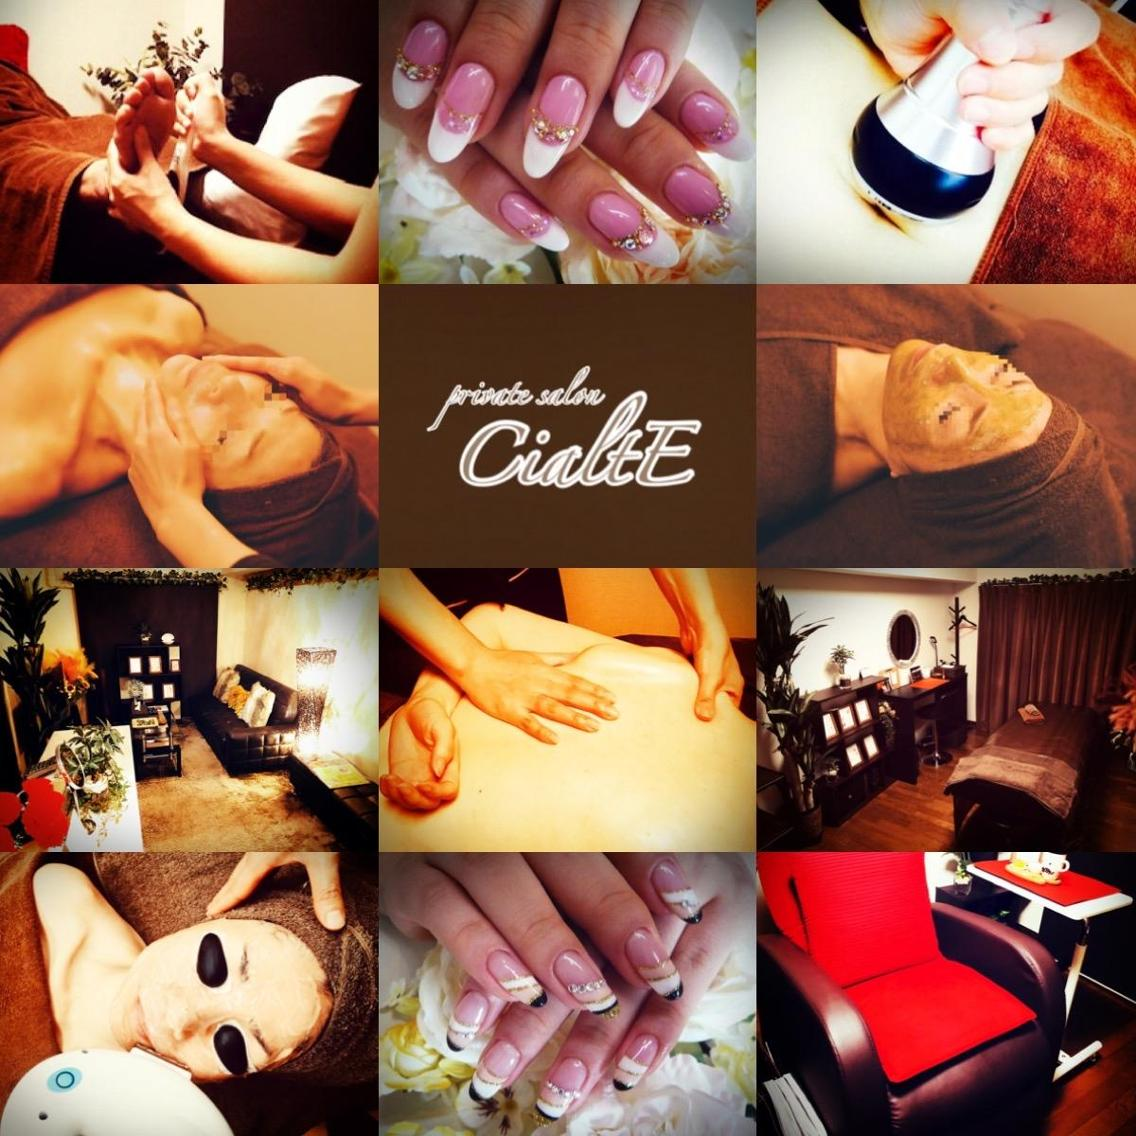 private salon CialtE所属・salon CialtEの掲載